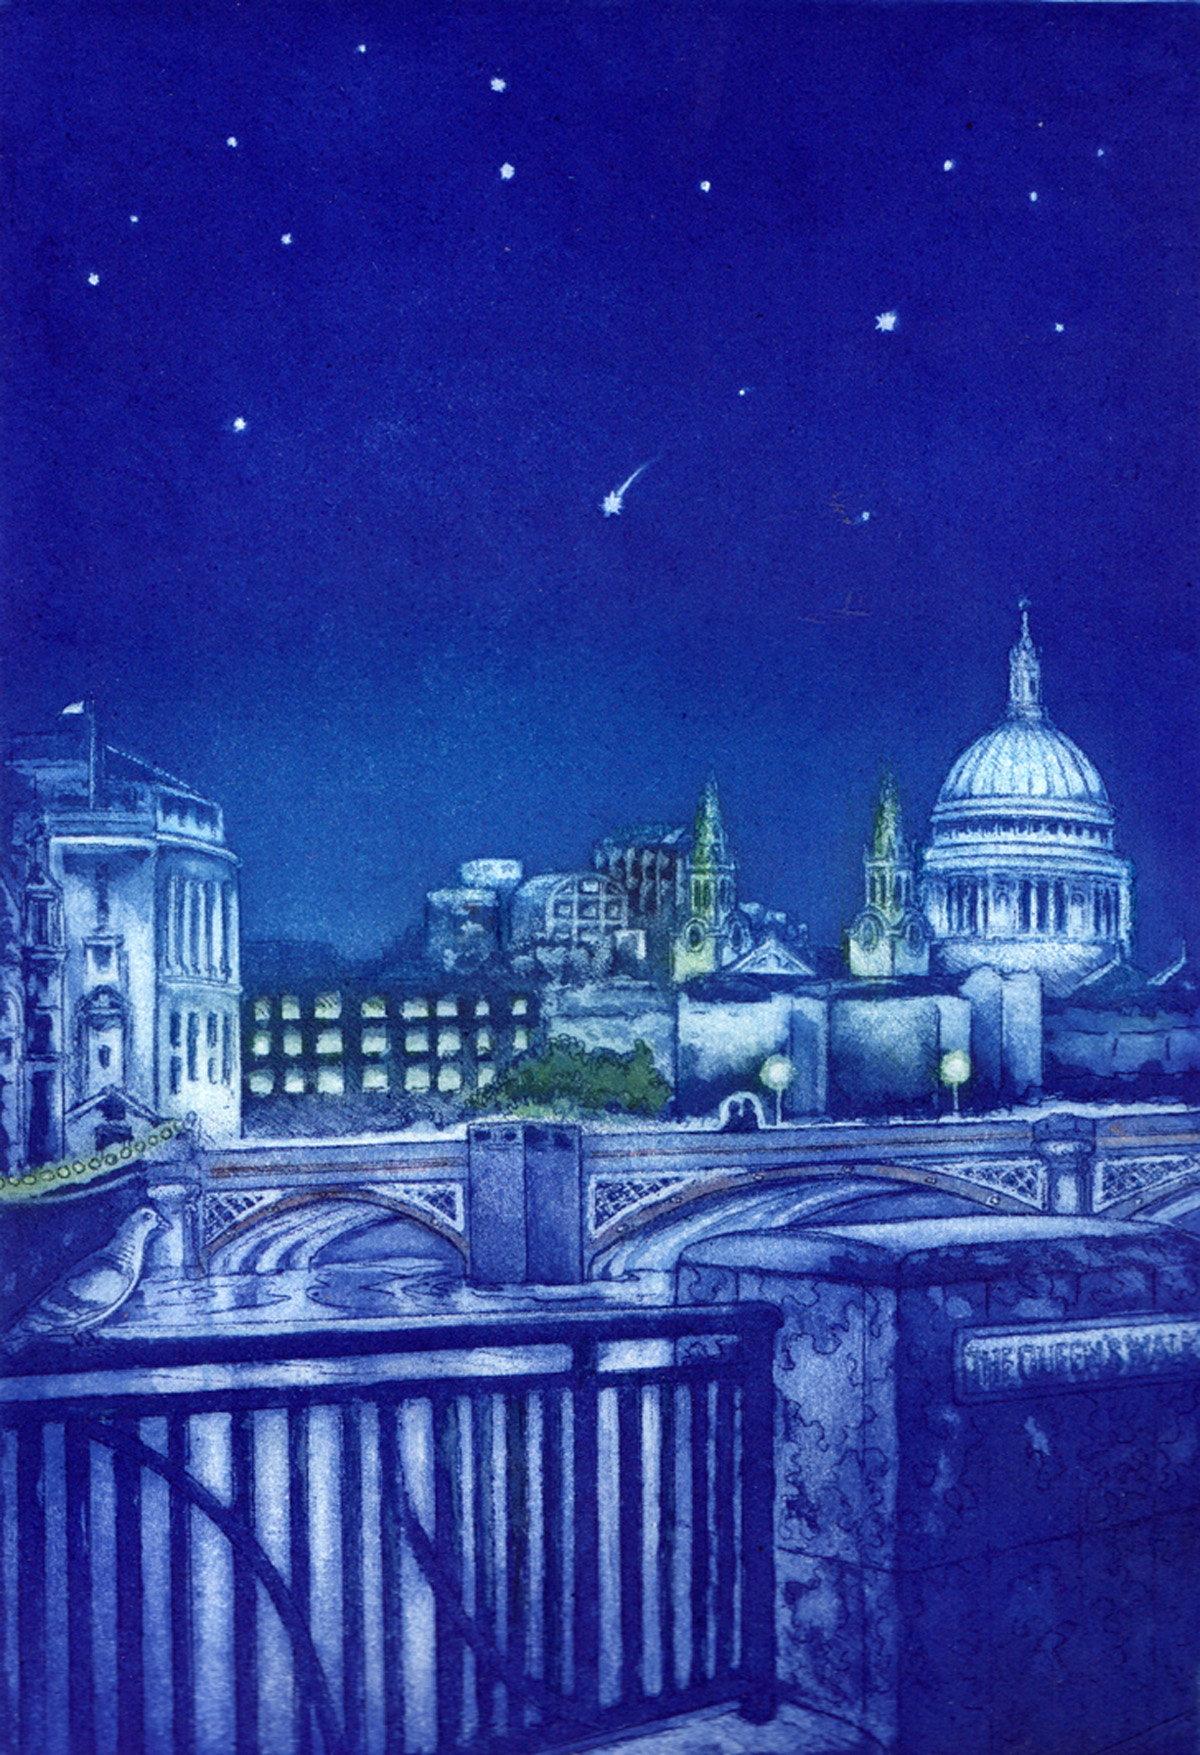 Starry night, Thameside